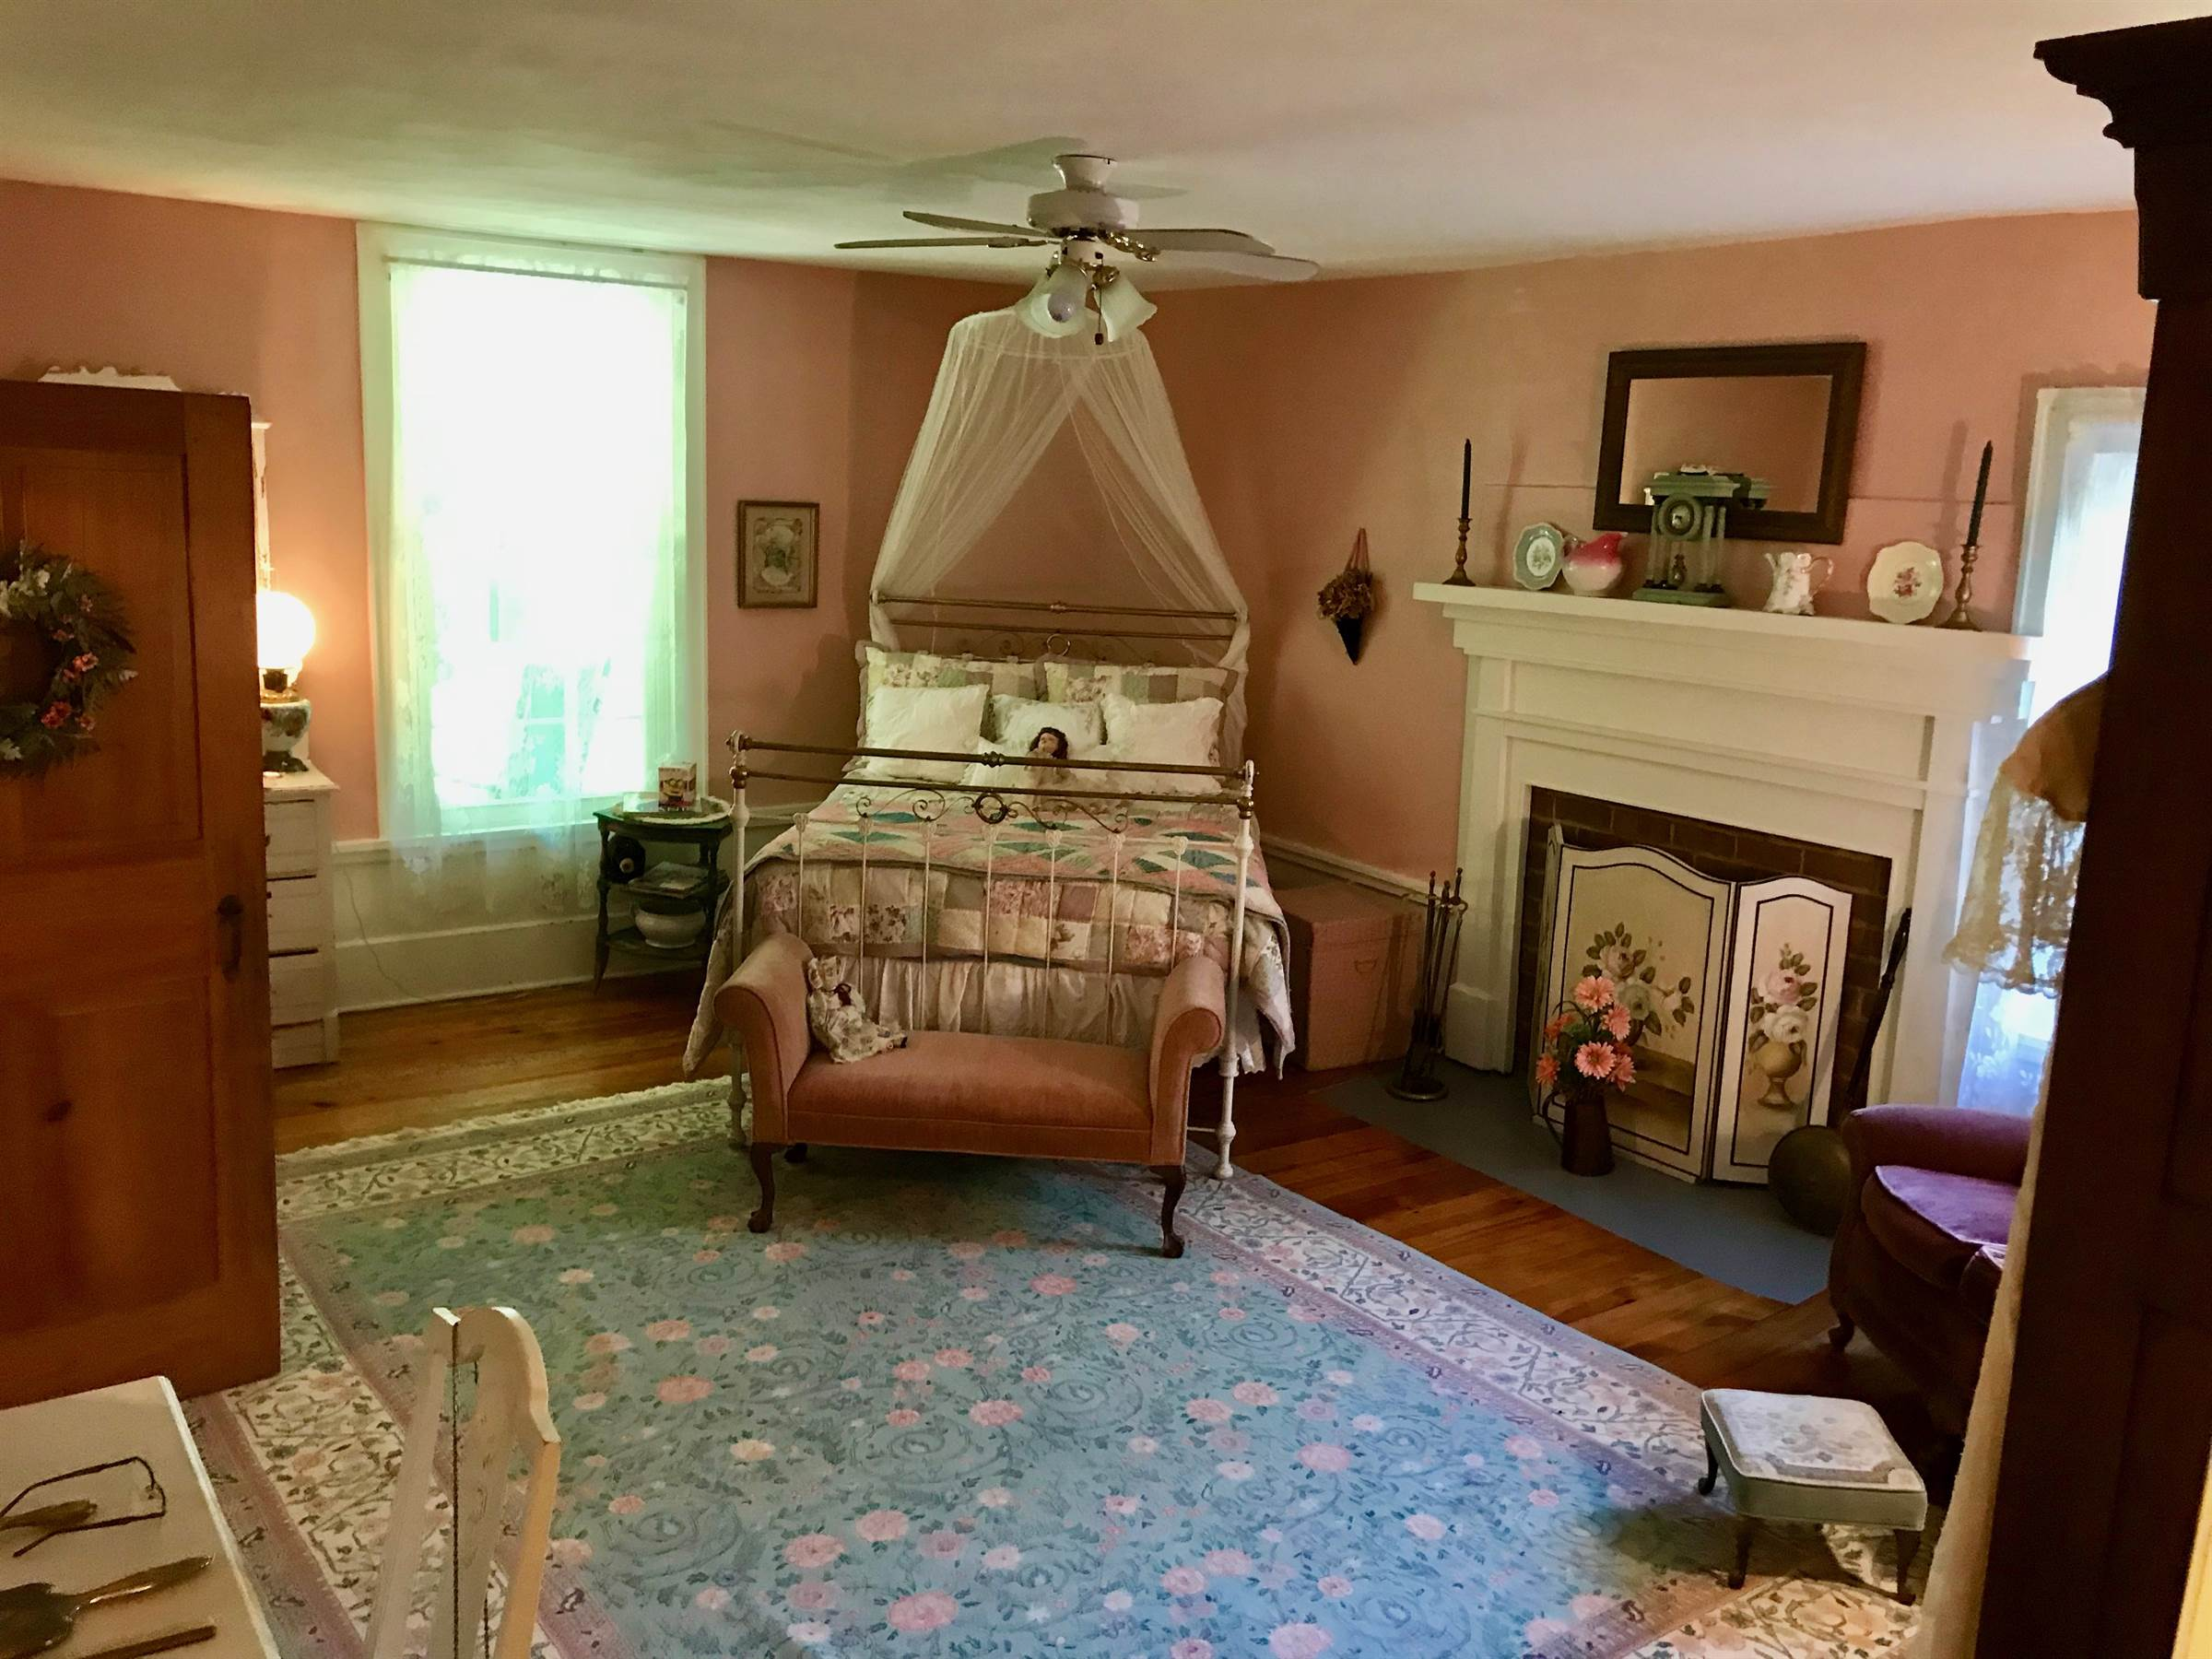 3915 Cedar Springs Road, Rural Retreat, VA 24368